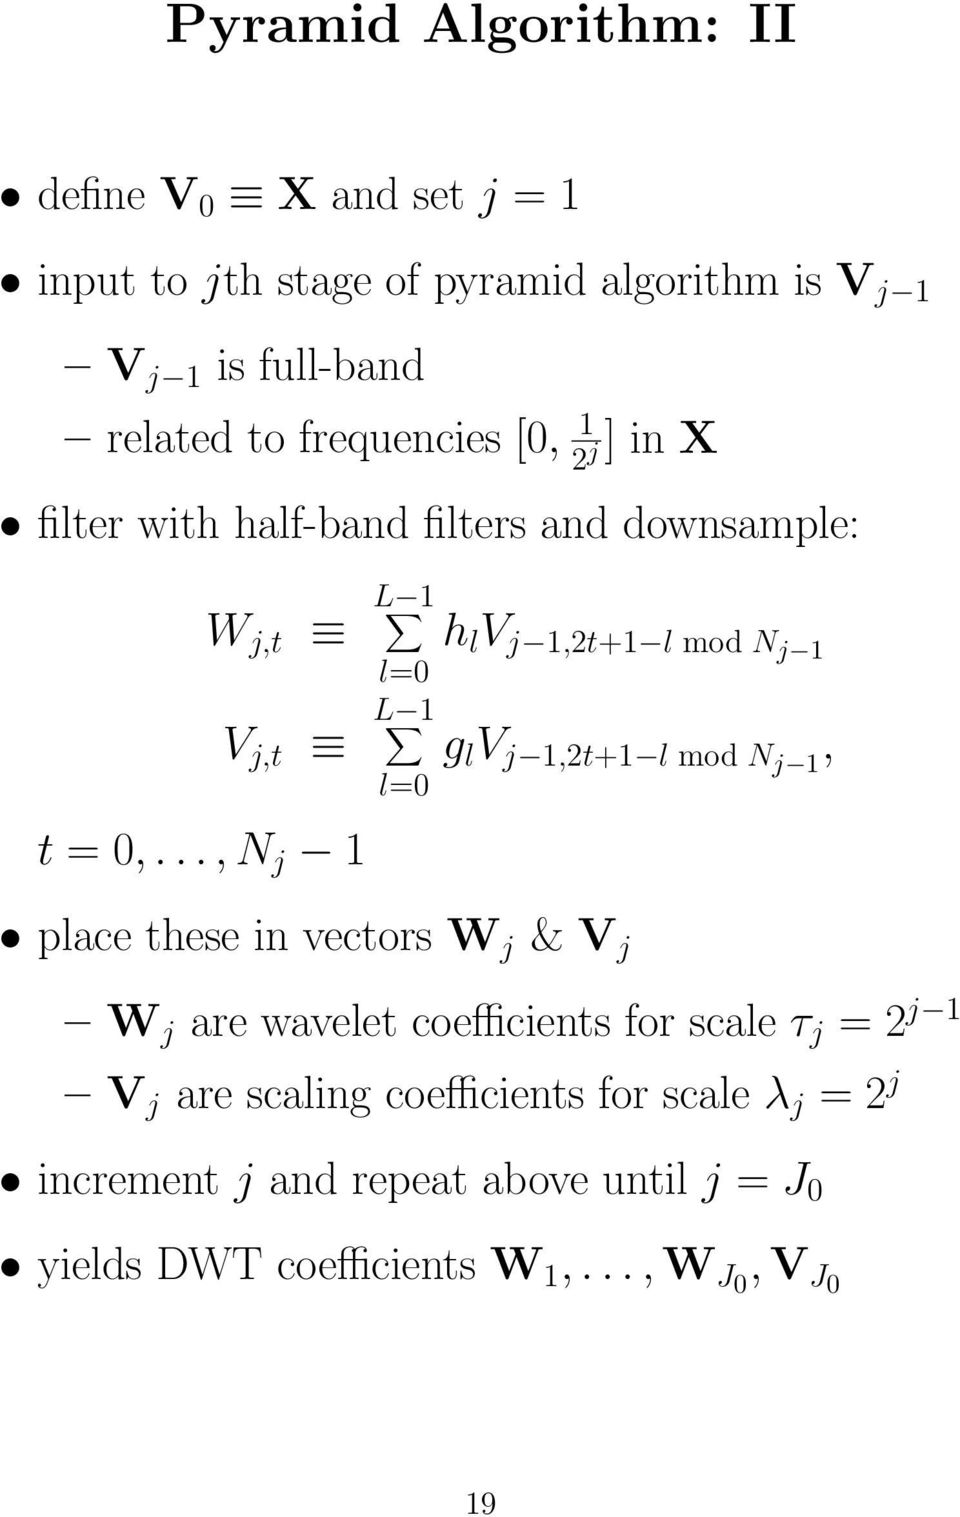 An Introduction to the Wavelet Analysis of Time Series - PDF